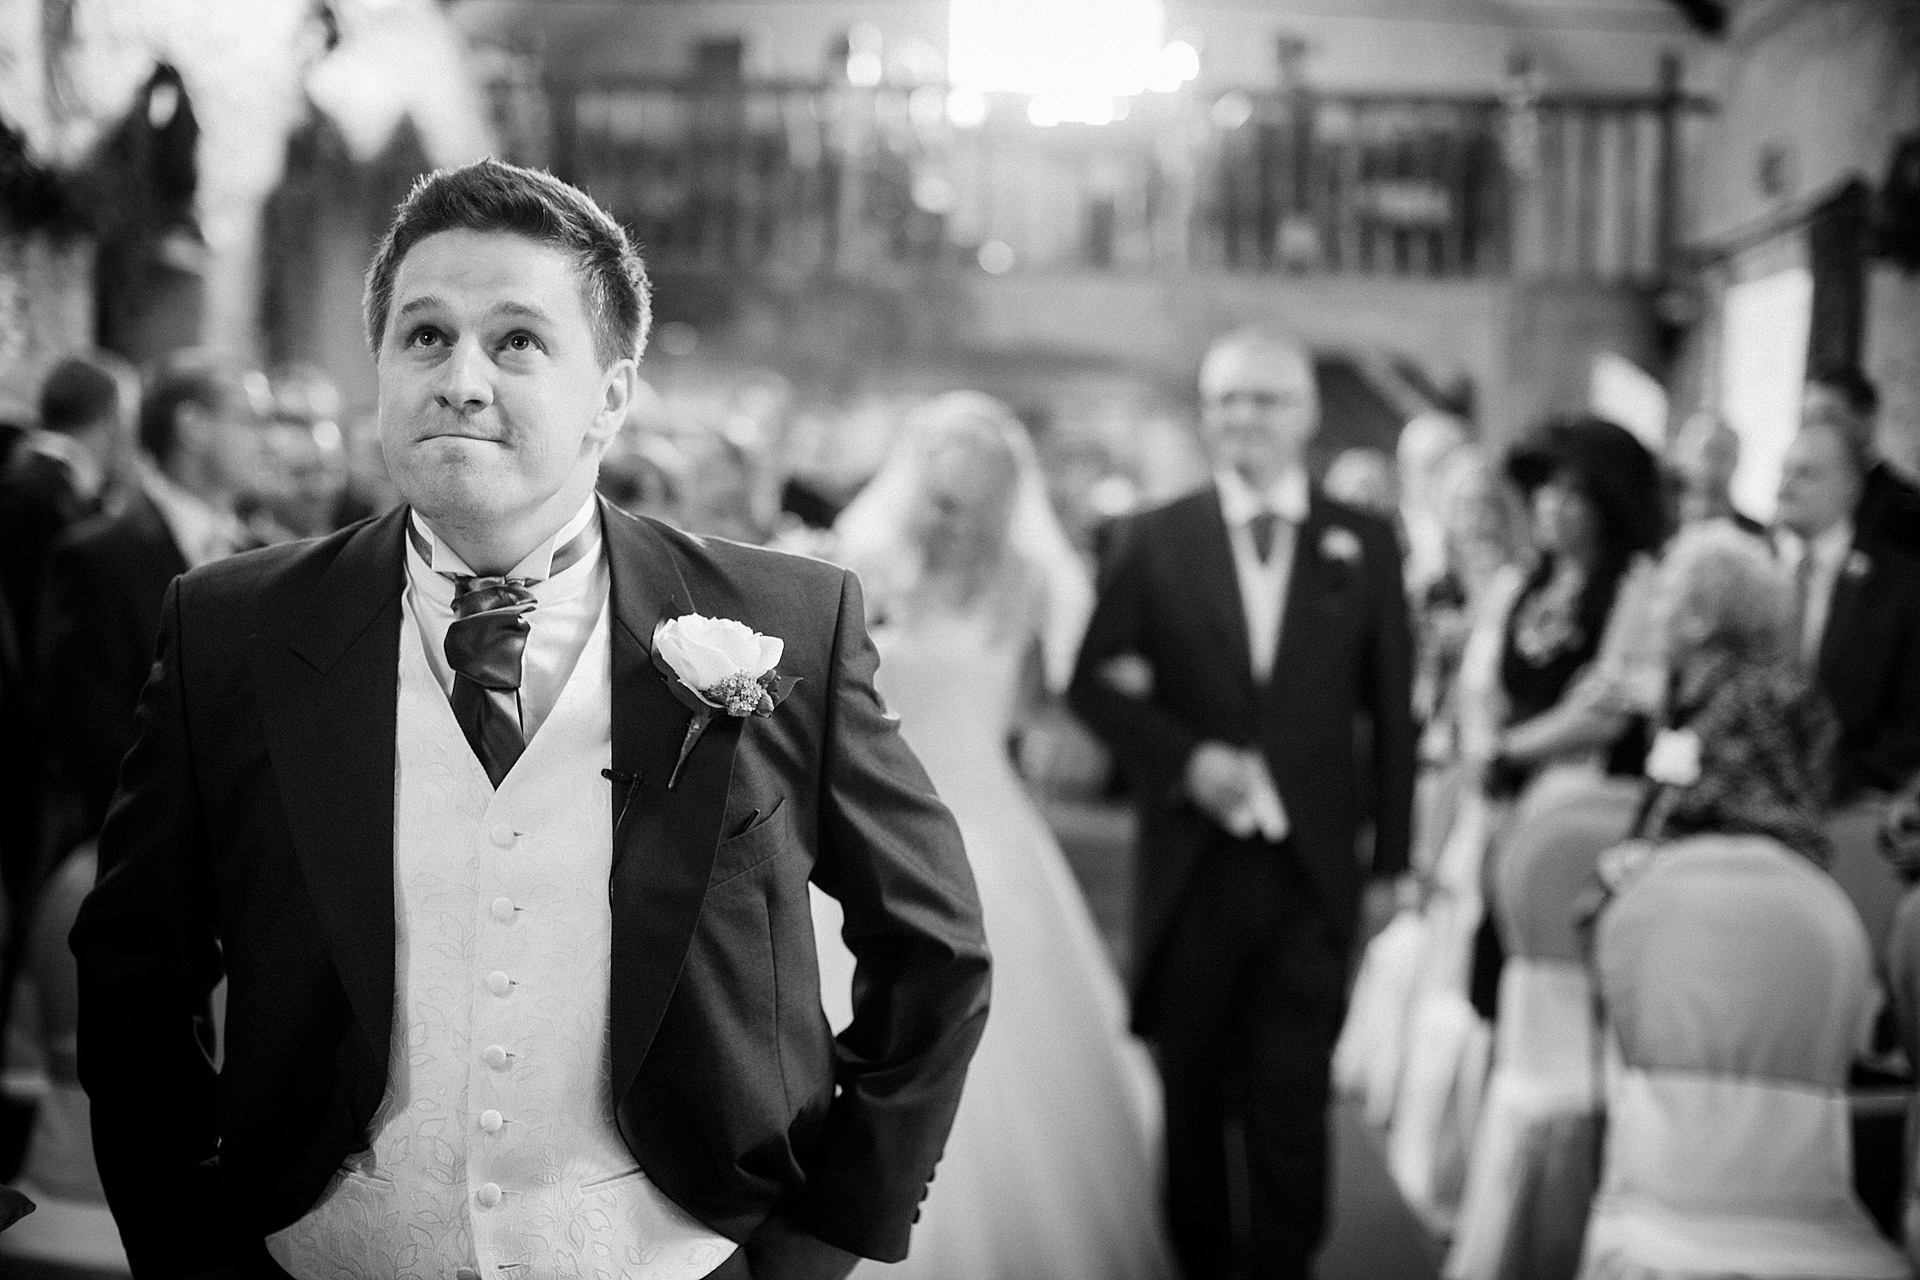 Groom looks emotional as his bride walks down the aisle